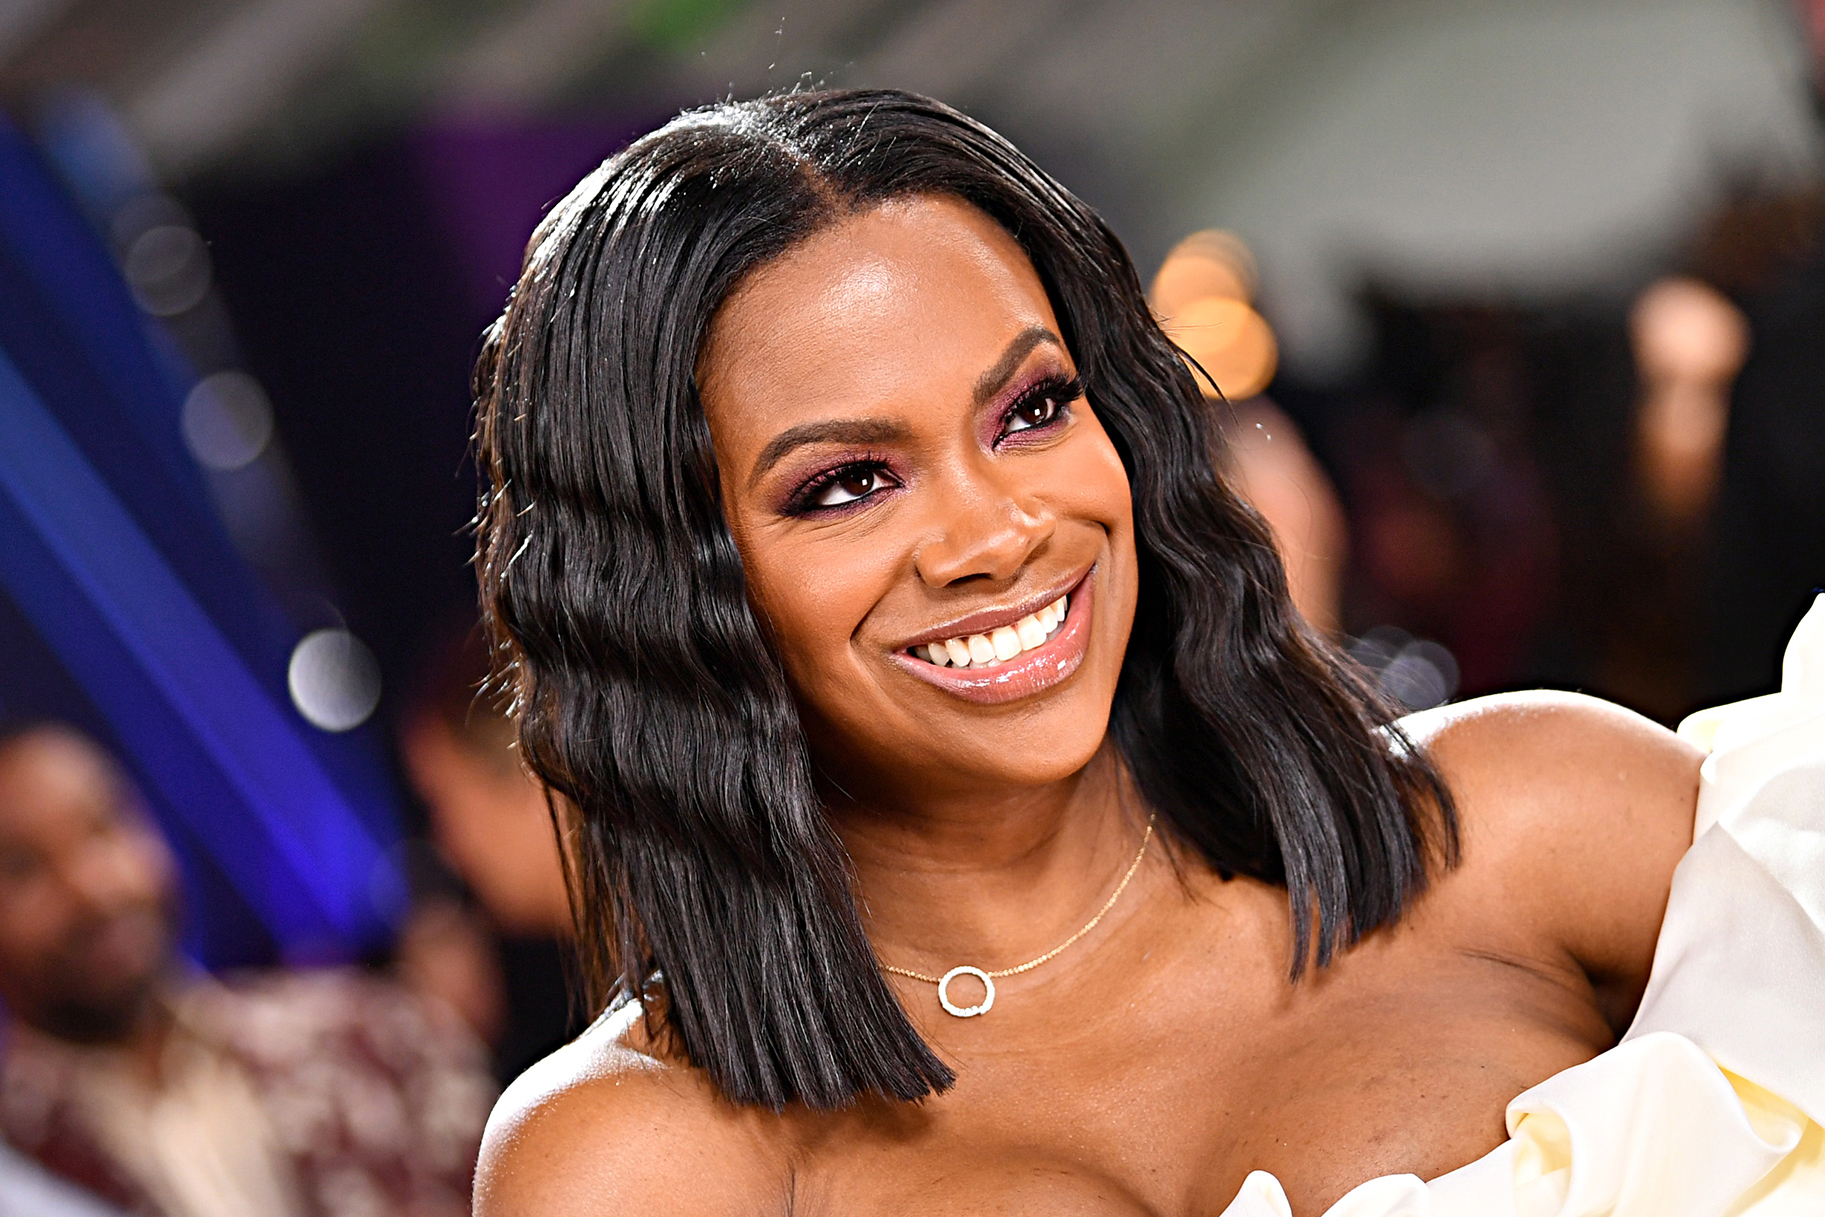 kandi-burruss-tells-fans-that-its-time-to-spice-up-their-lives-see-her-clip